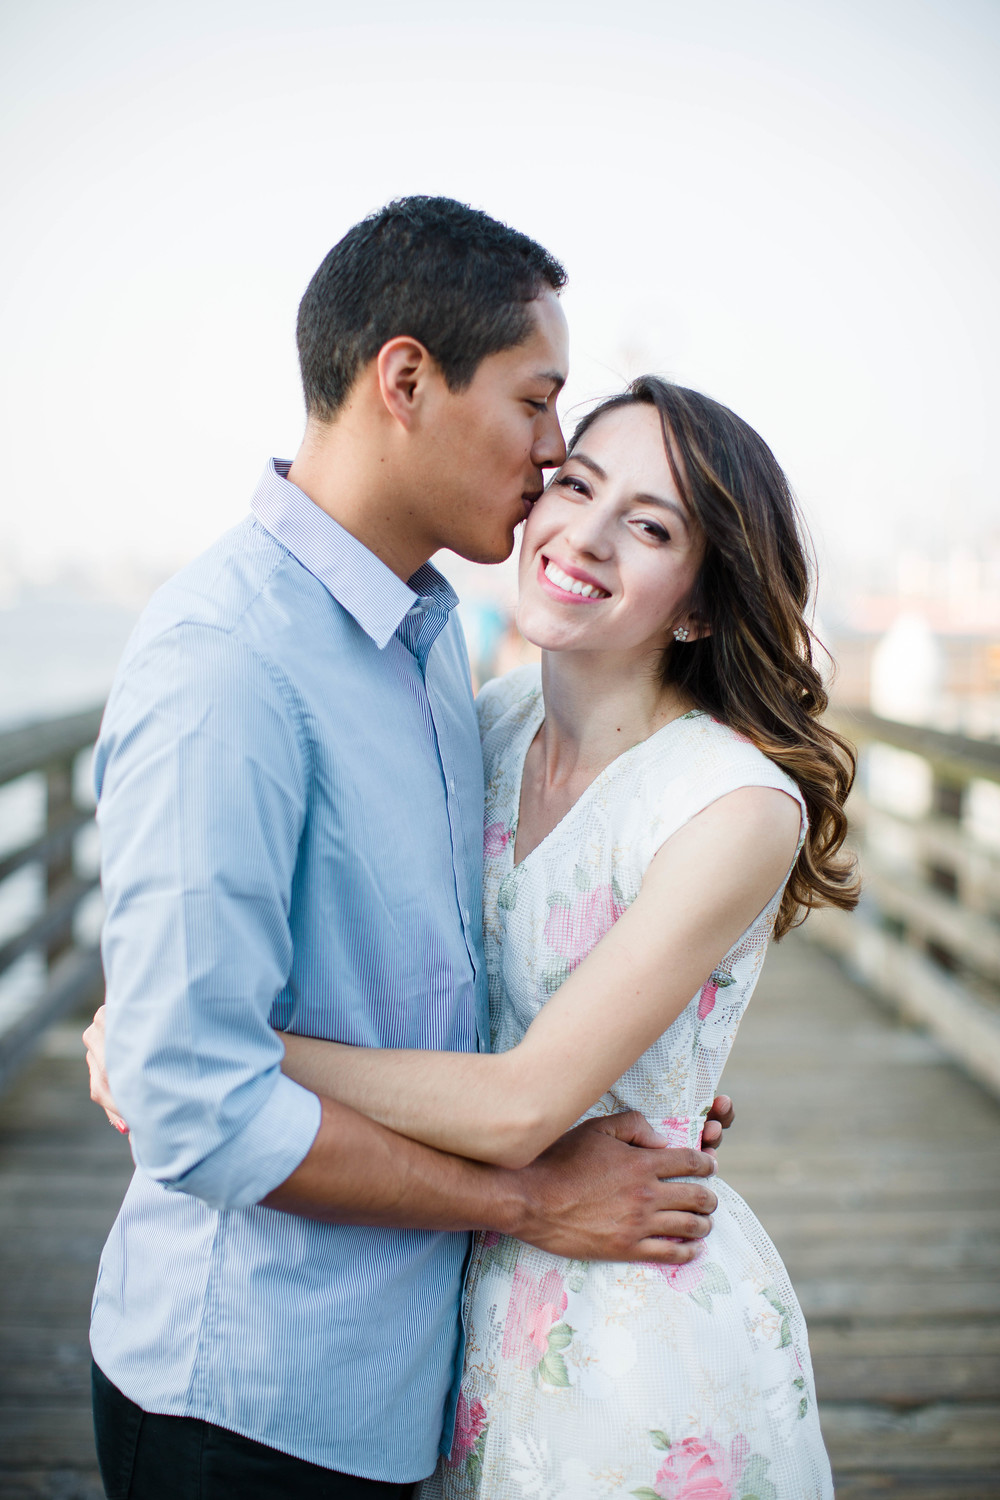 Cruz+Robert ©2015AdinaPrestonPhotography-Seattle+Photographer+Engagement-Weddings-2.jpg